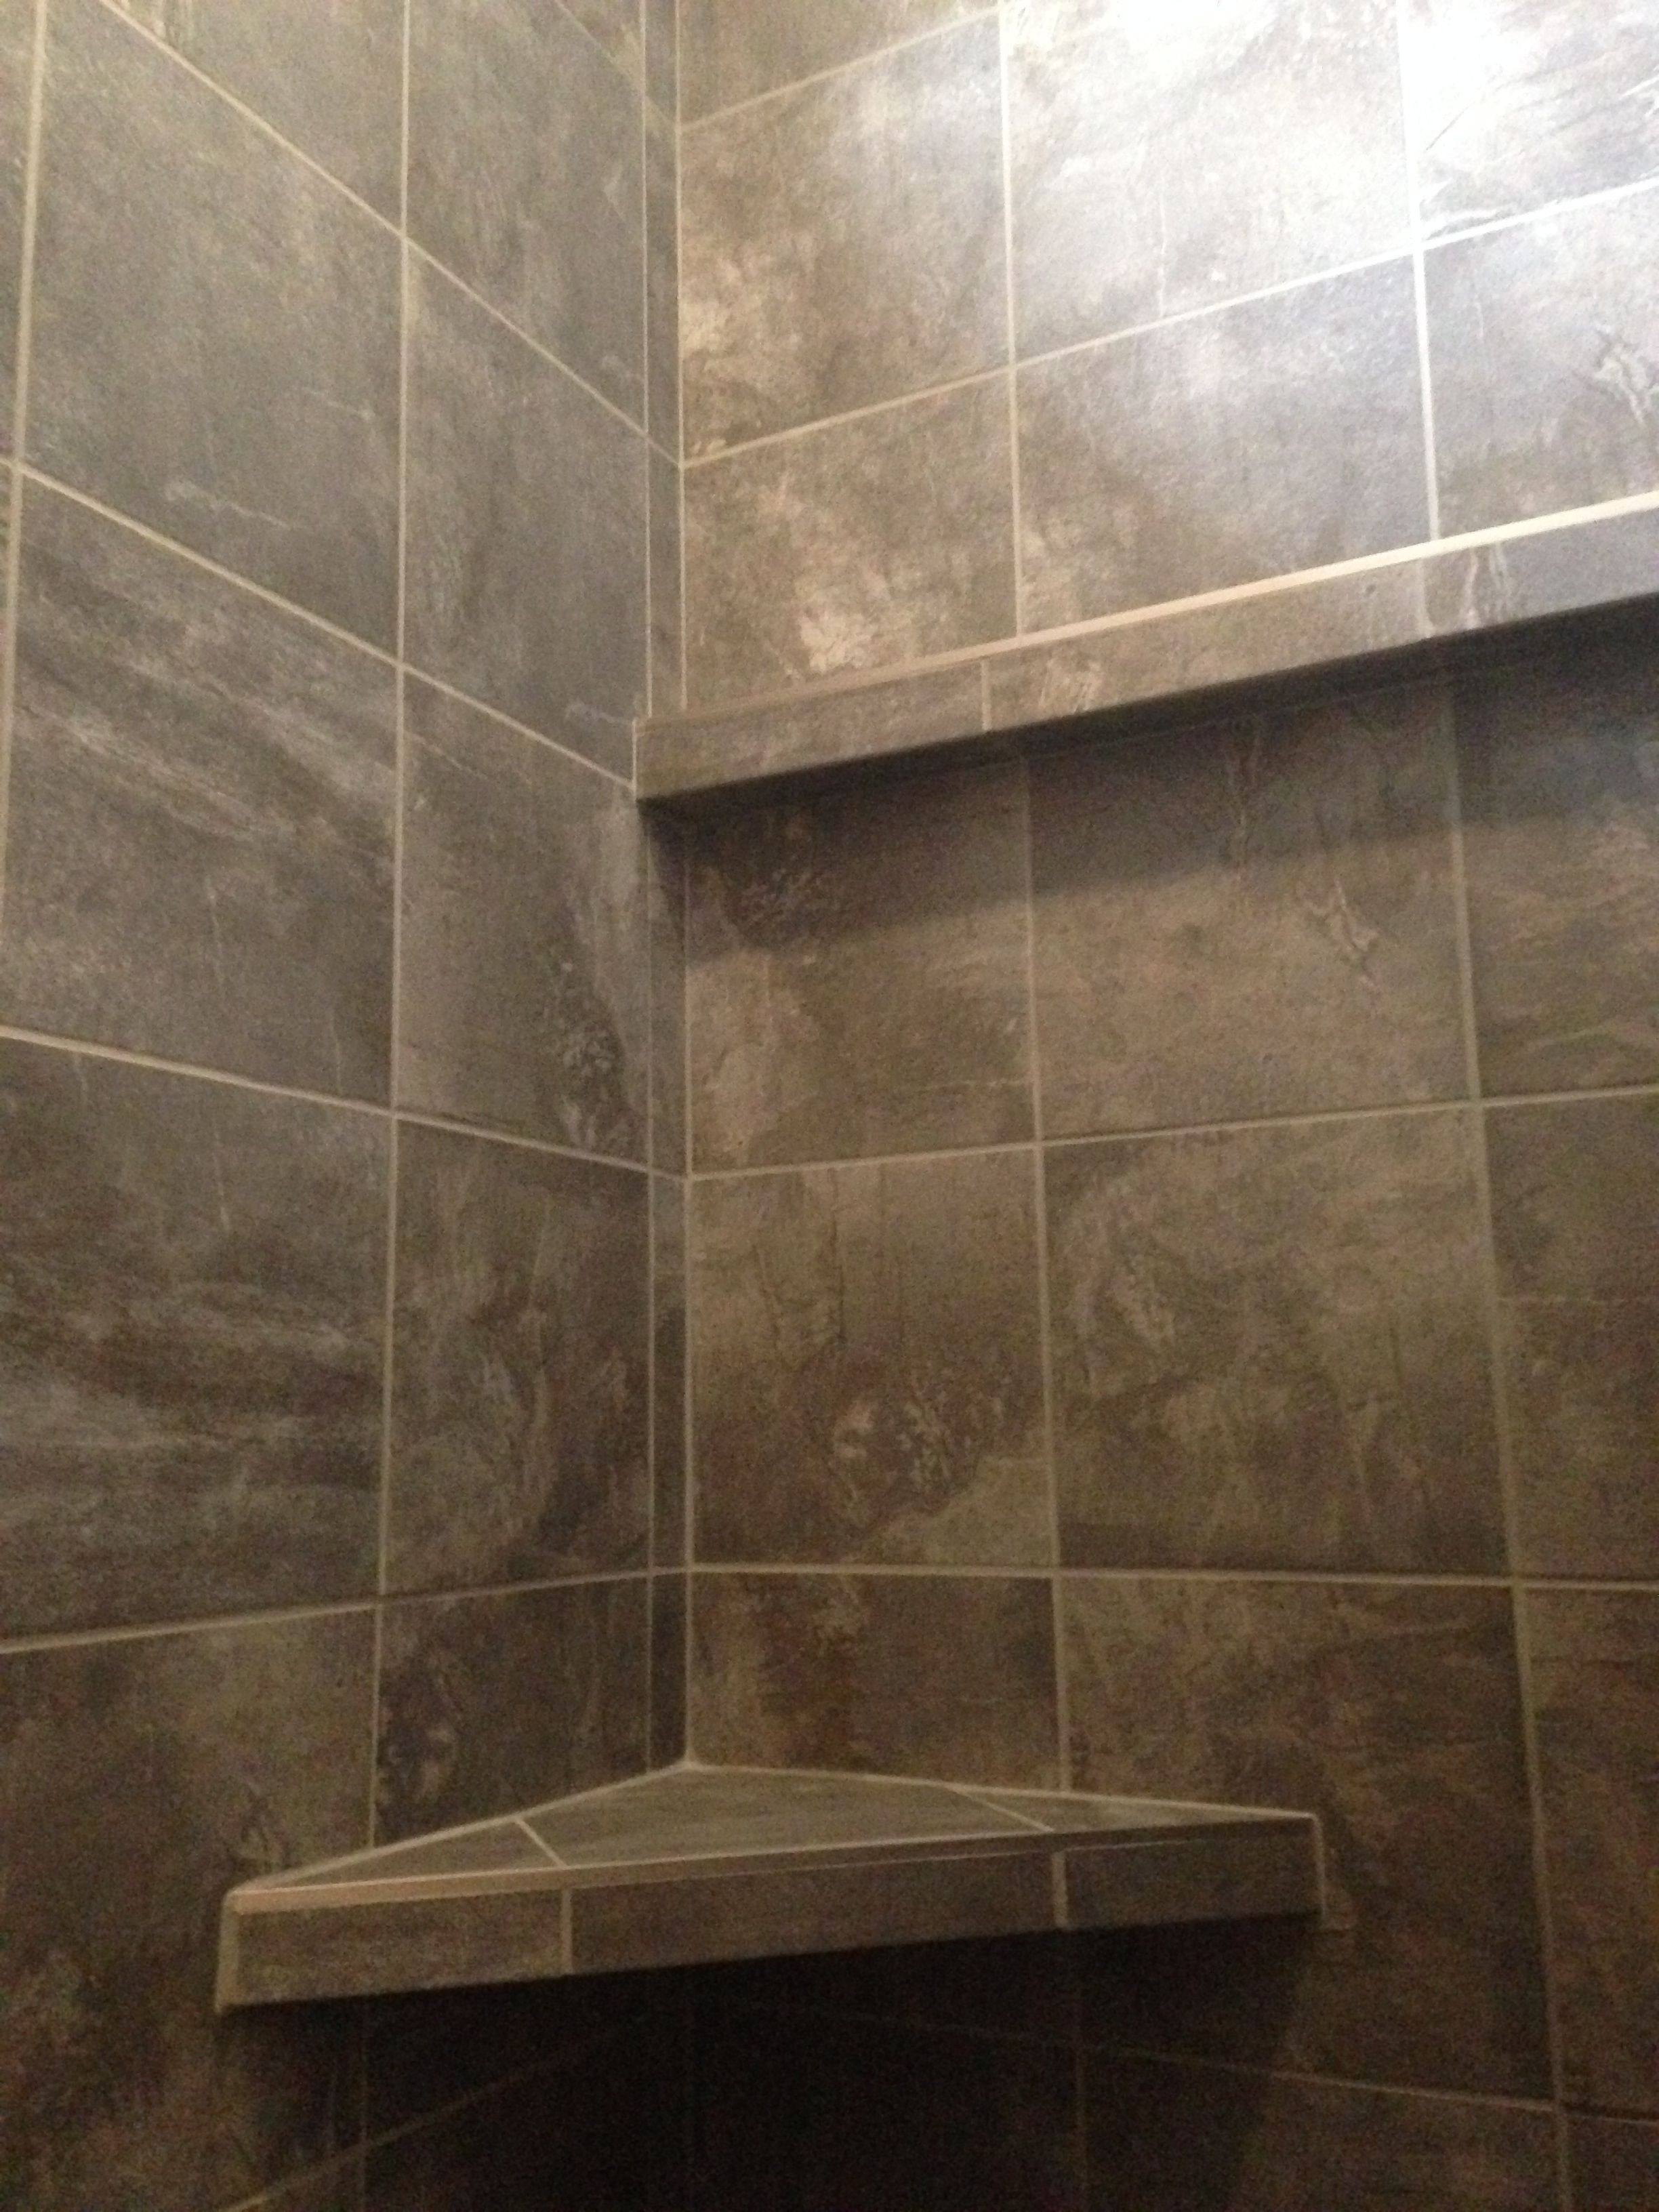 custom tiled shower in a porcelain slate looking tile with a built in bench and shelf design. Black Bedroom Furniture Sets. Home Design Ideas